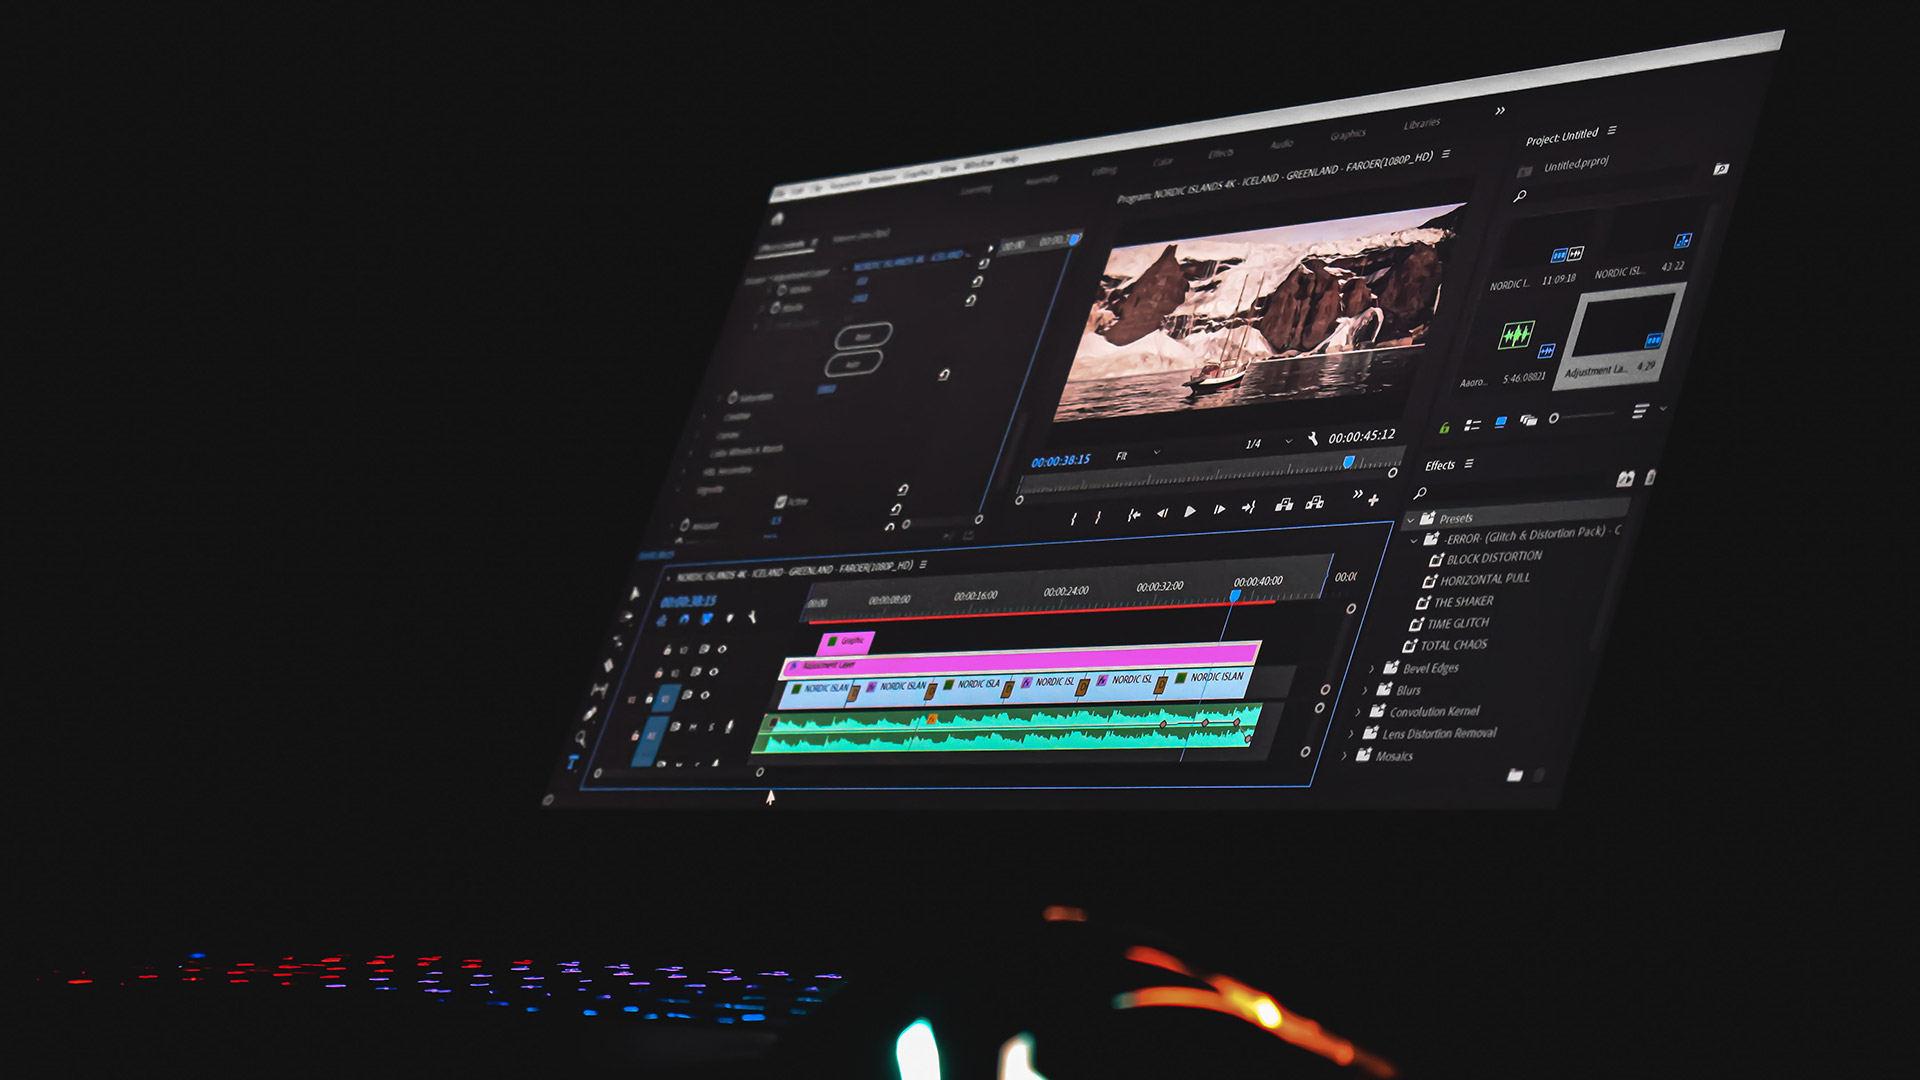 Top 5 Picks for Video Editing Software in 2021